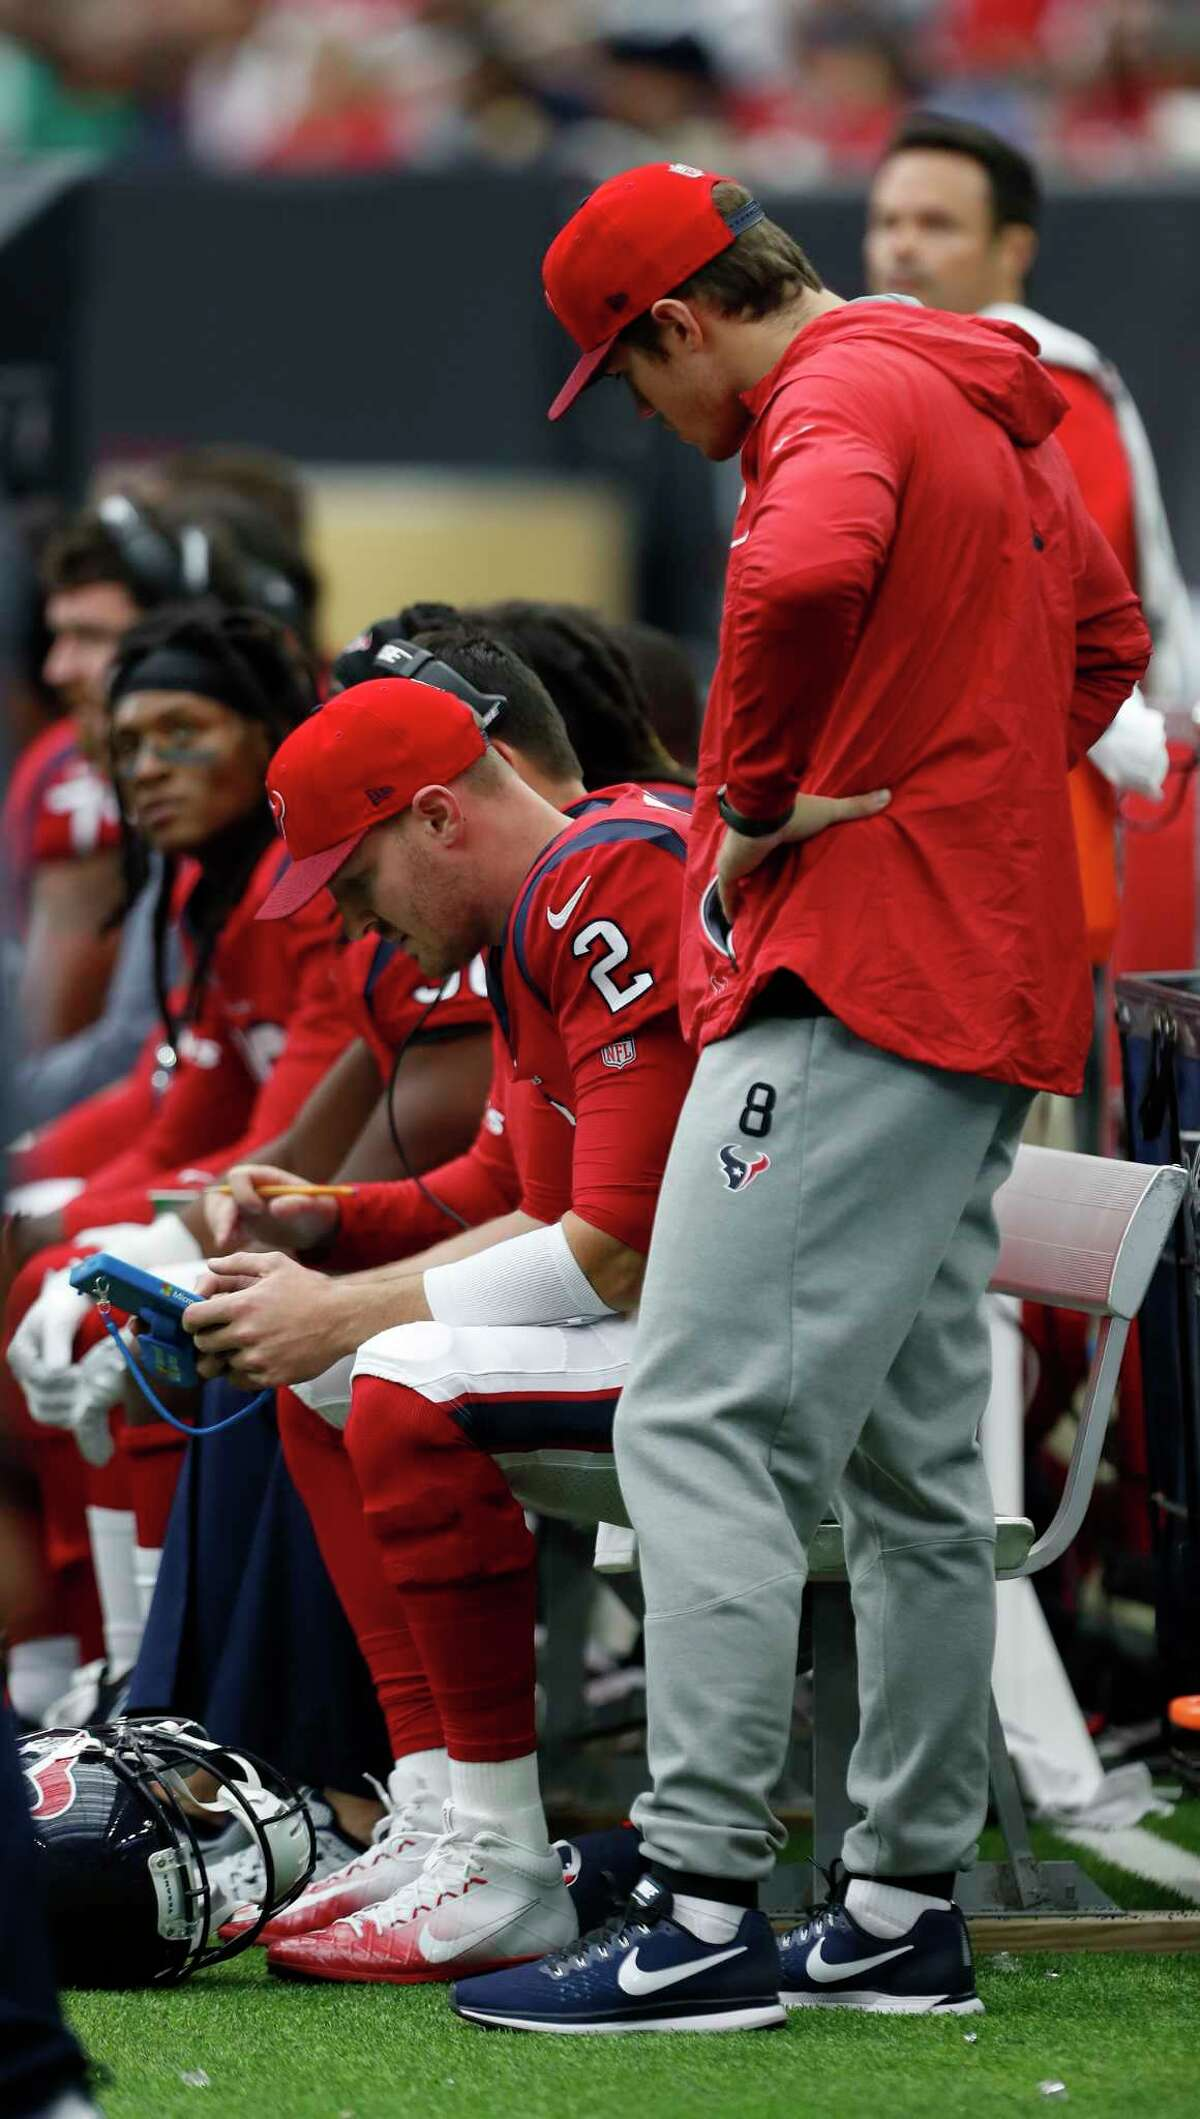 Houston Texans quarterback T.J. Yates (2) studies a play on the bench after taking over for Tom Savage during the second quarter of an NFL football game at NRG Stadium, Sunday, Dec. 10, 2017, in Houston.